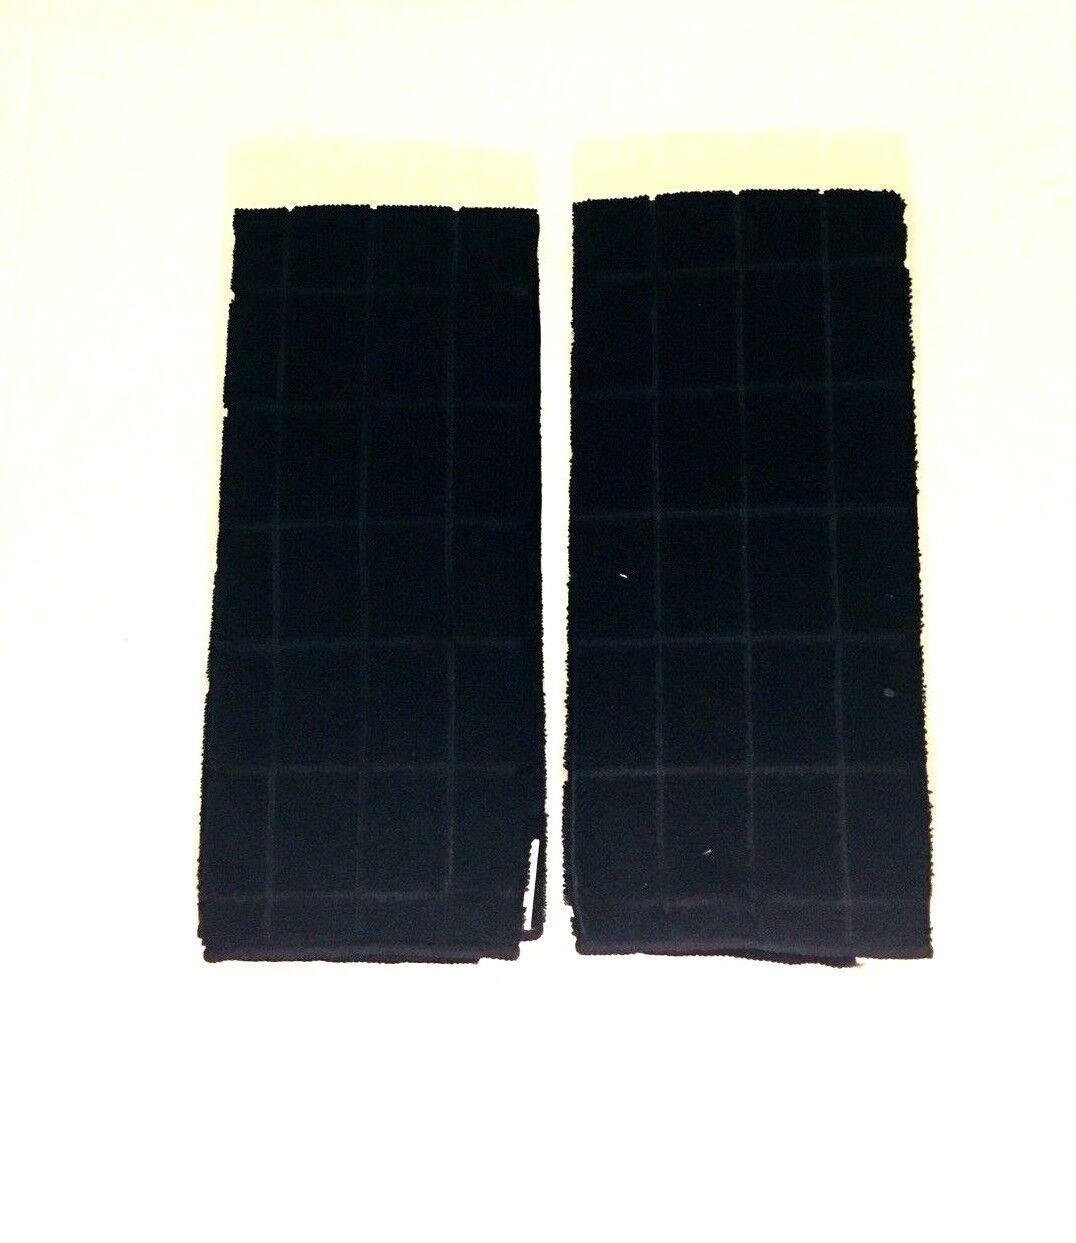 Kitchen Dish Hand Towels Black Solid Color Set Of Two New 15